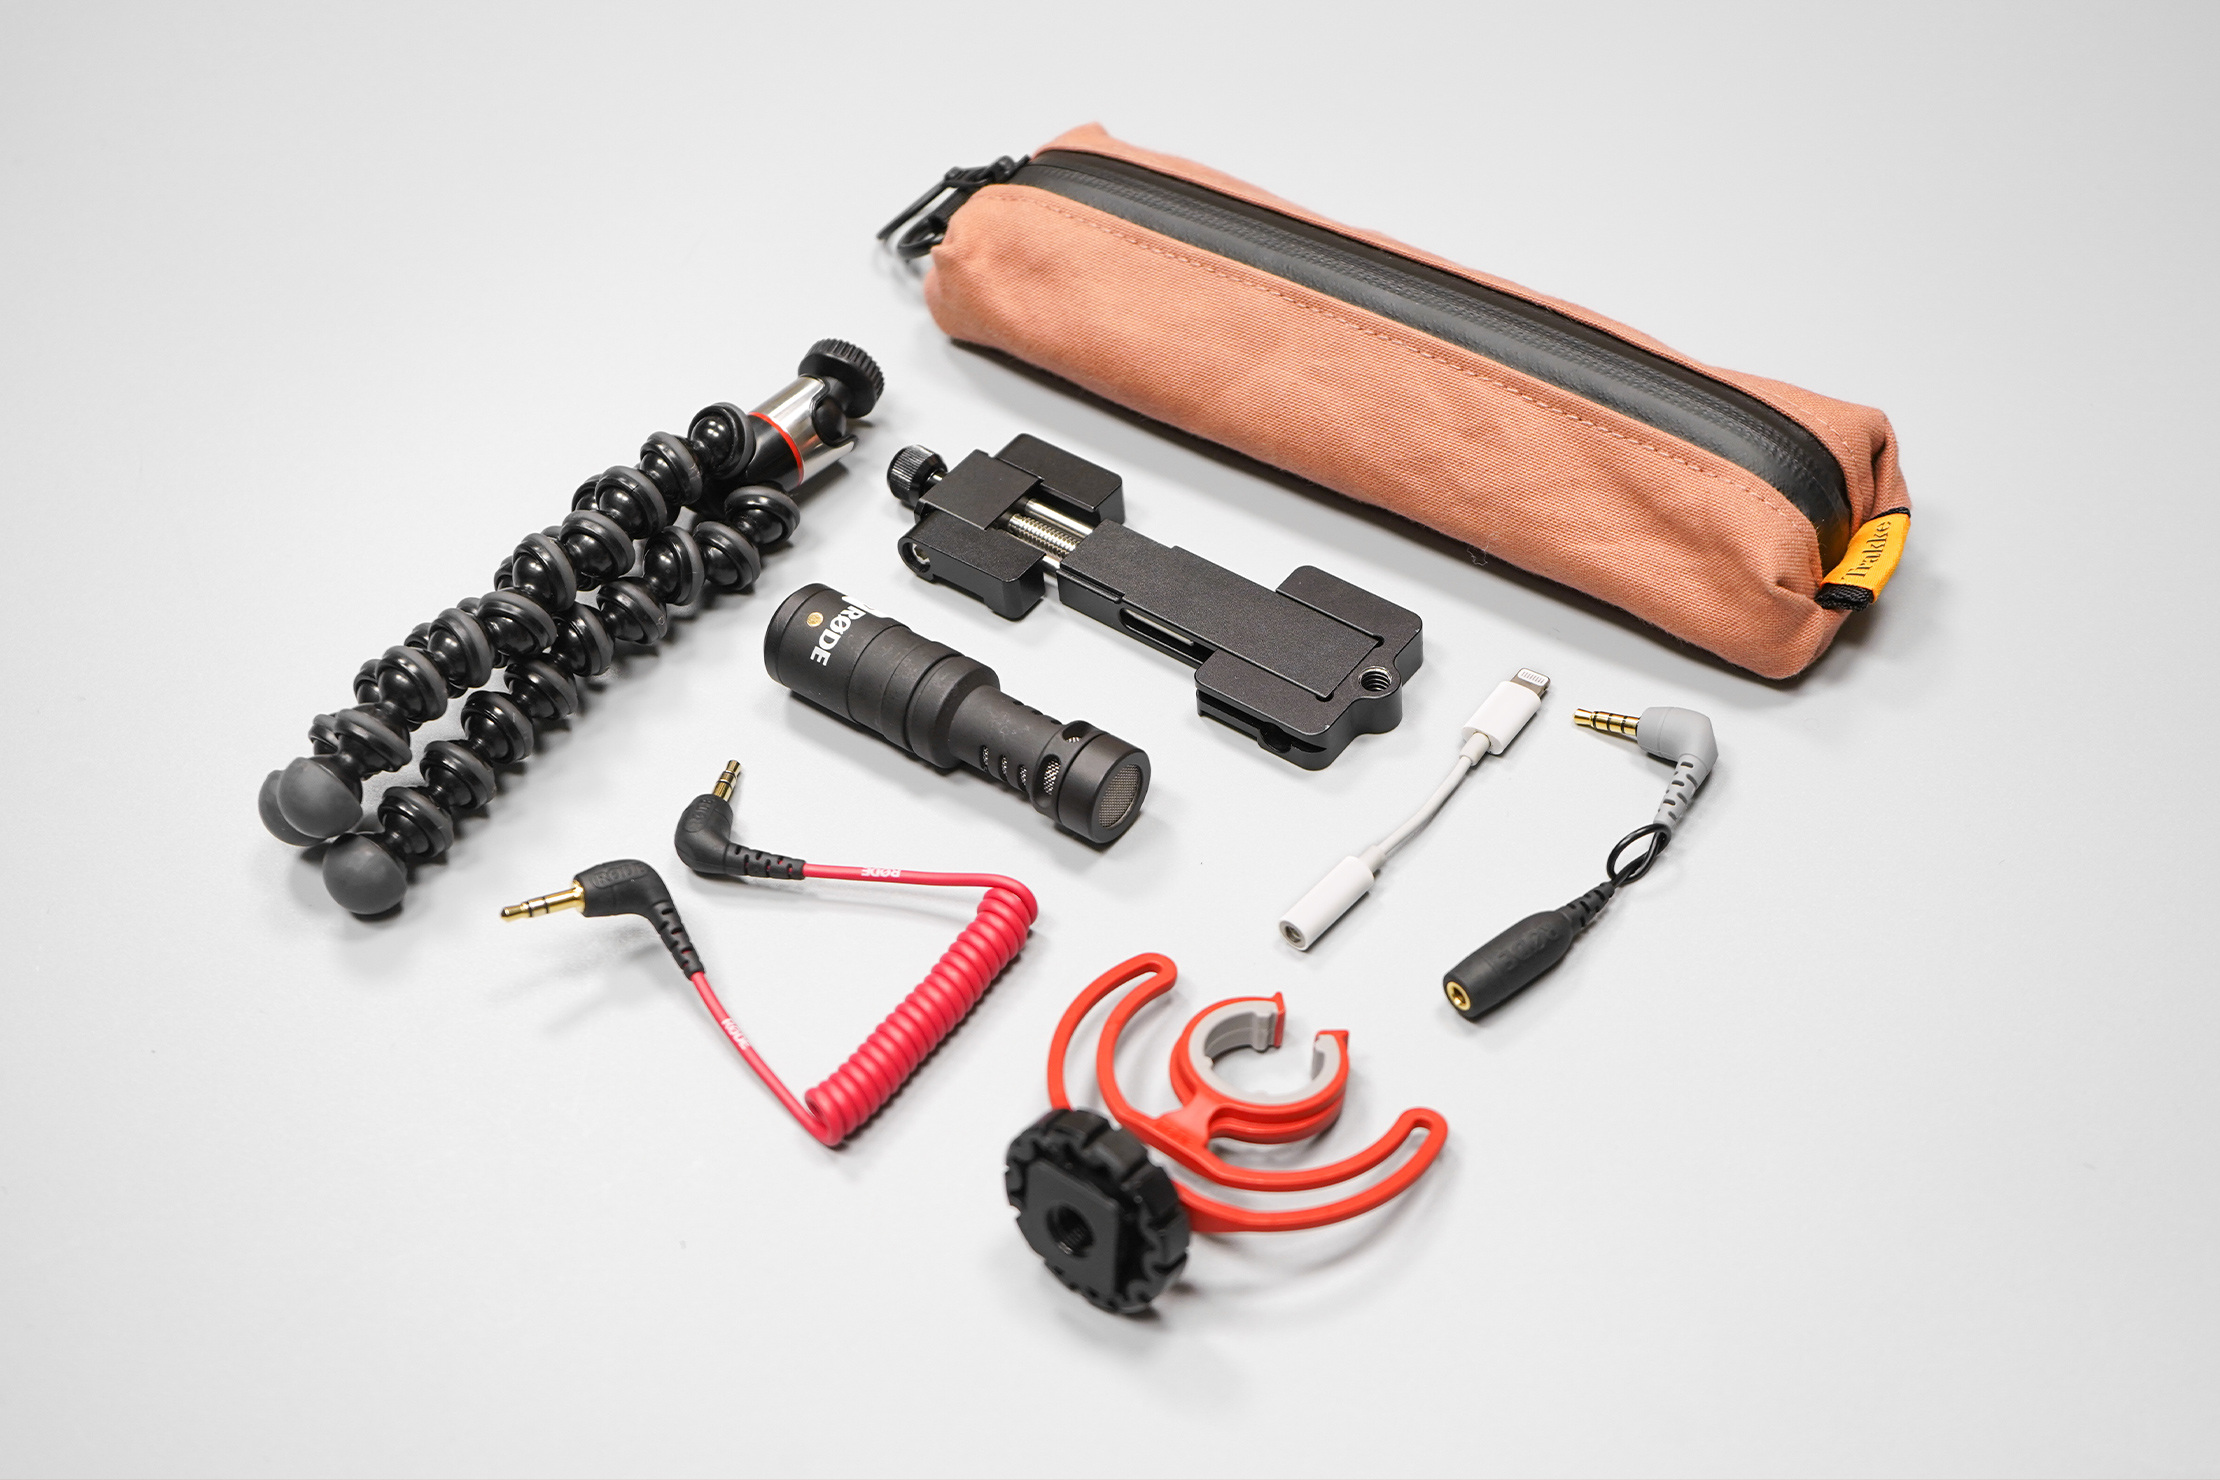 Trakke Pencil Case | Choose your gear right and you'll be able to fit a lot inside